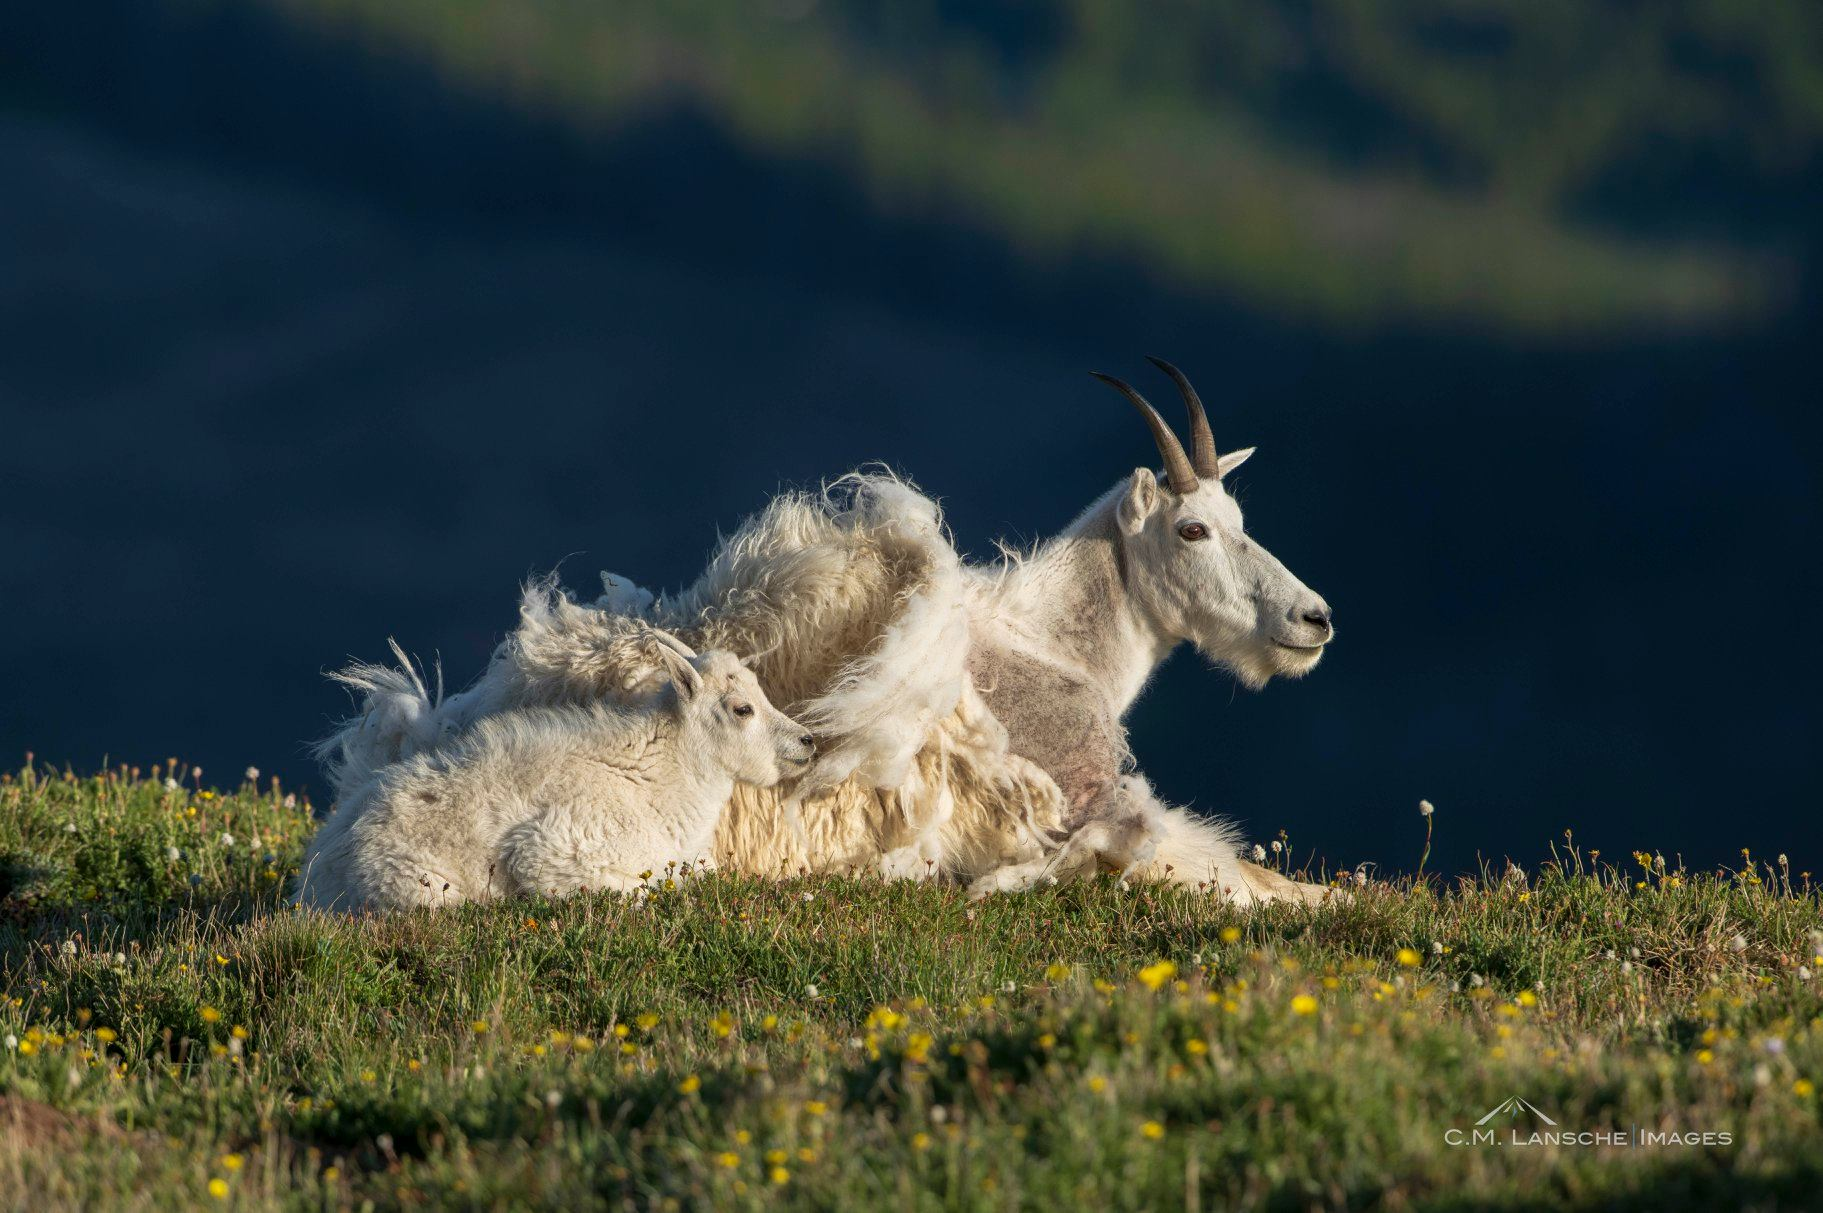 These mountain goats are just chilling here. This image also by Charlie Lansche - C.M Lansche Images